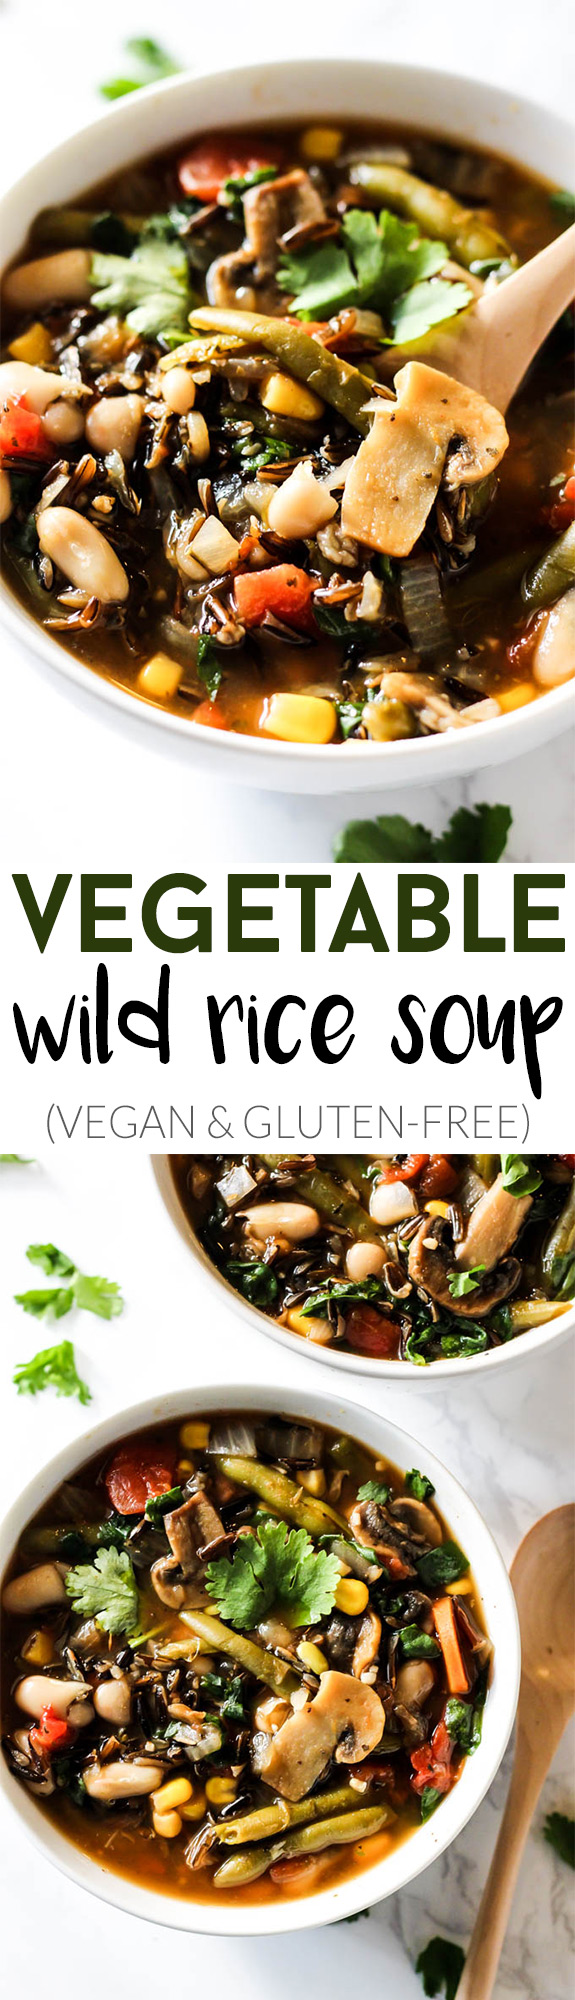 Load up on this cozy Vegetable Wild Rice Soup this winter! It's full of nutritious ingredients and will satisfy you on cold nights. Vegan & gluten-free!